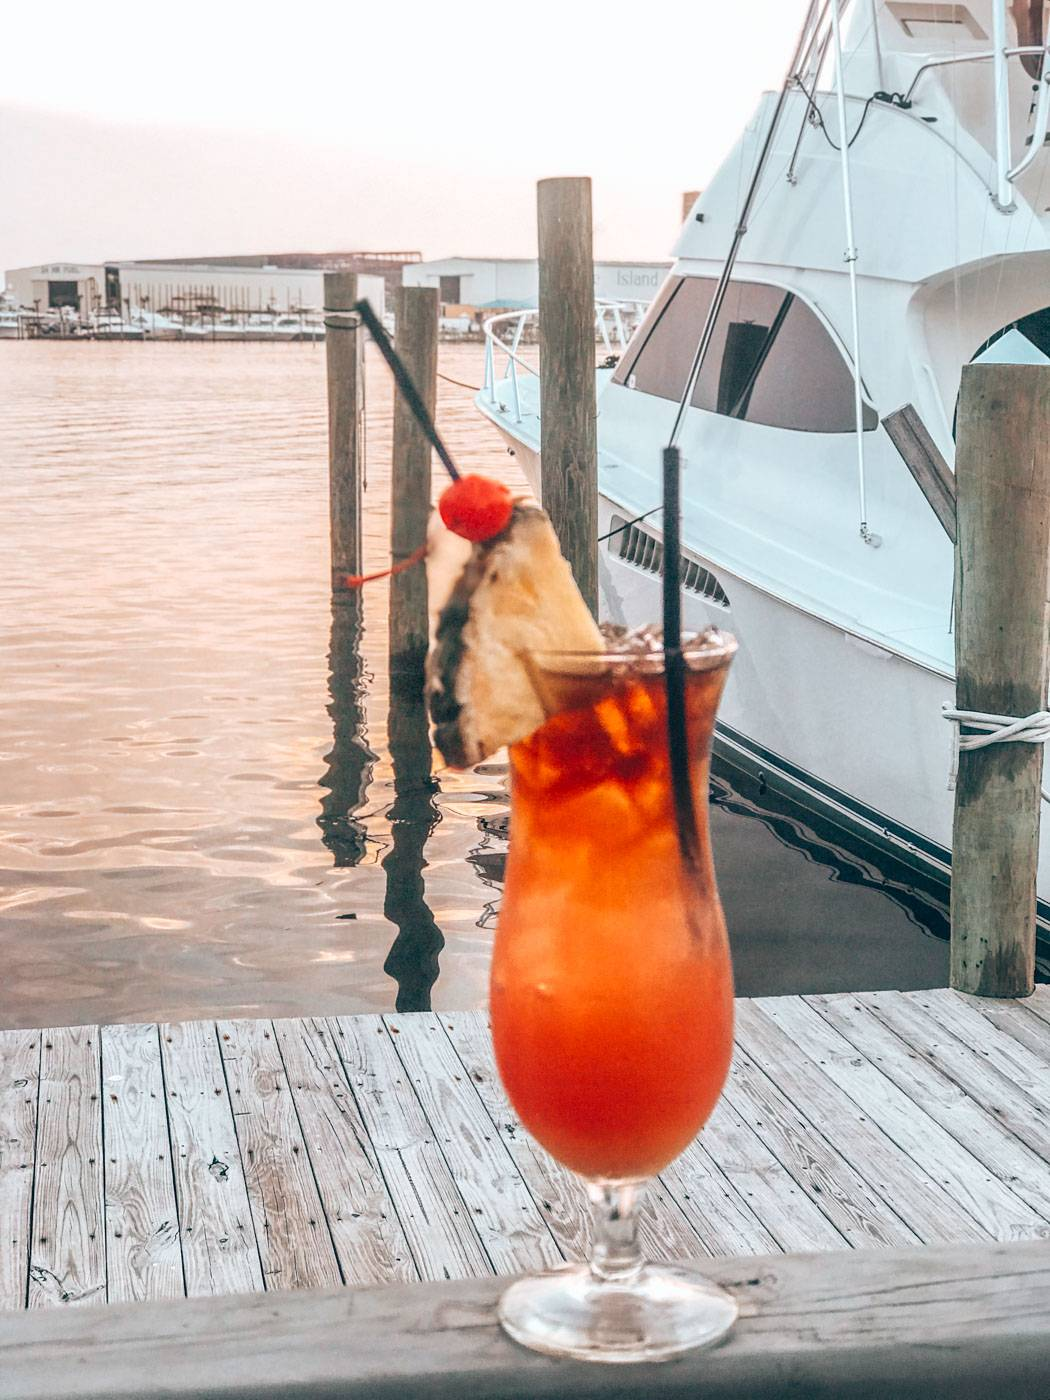 Looking for the best places to eat in Panama City Beach? We have you covered with these great finds including a stop at the Grand Marlin #Florida #Panamacitybeach